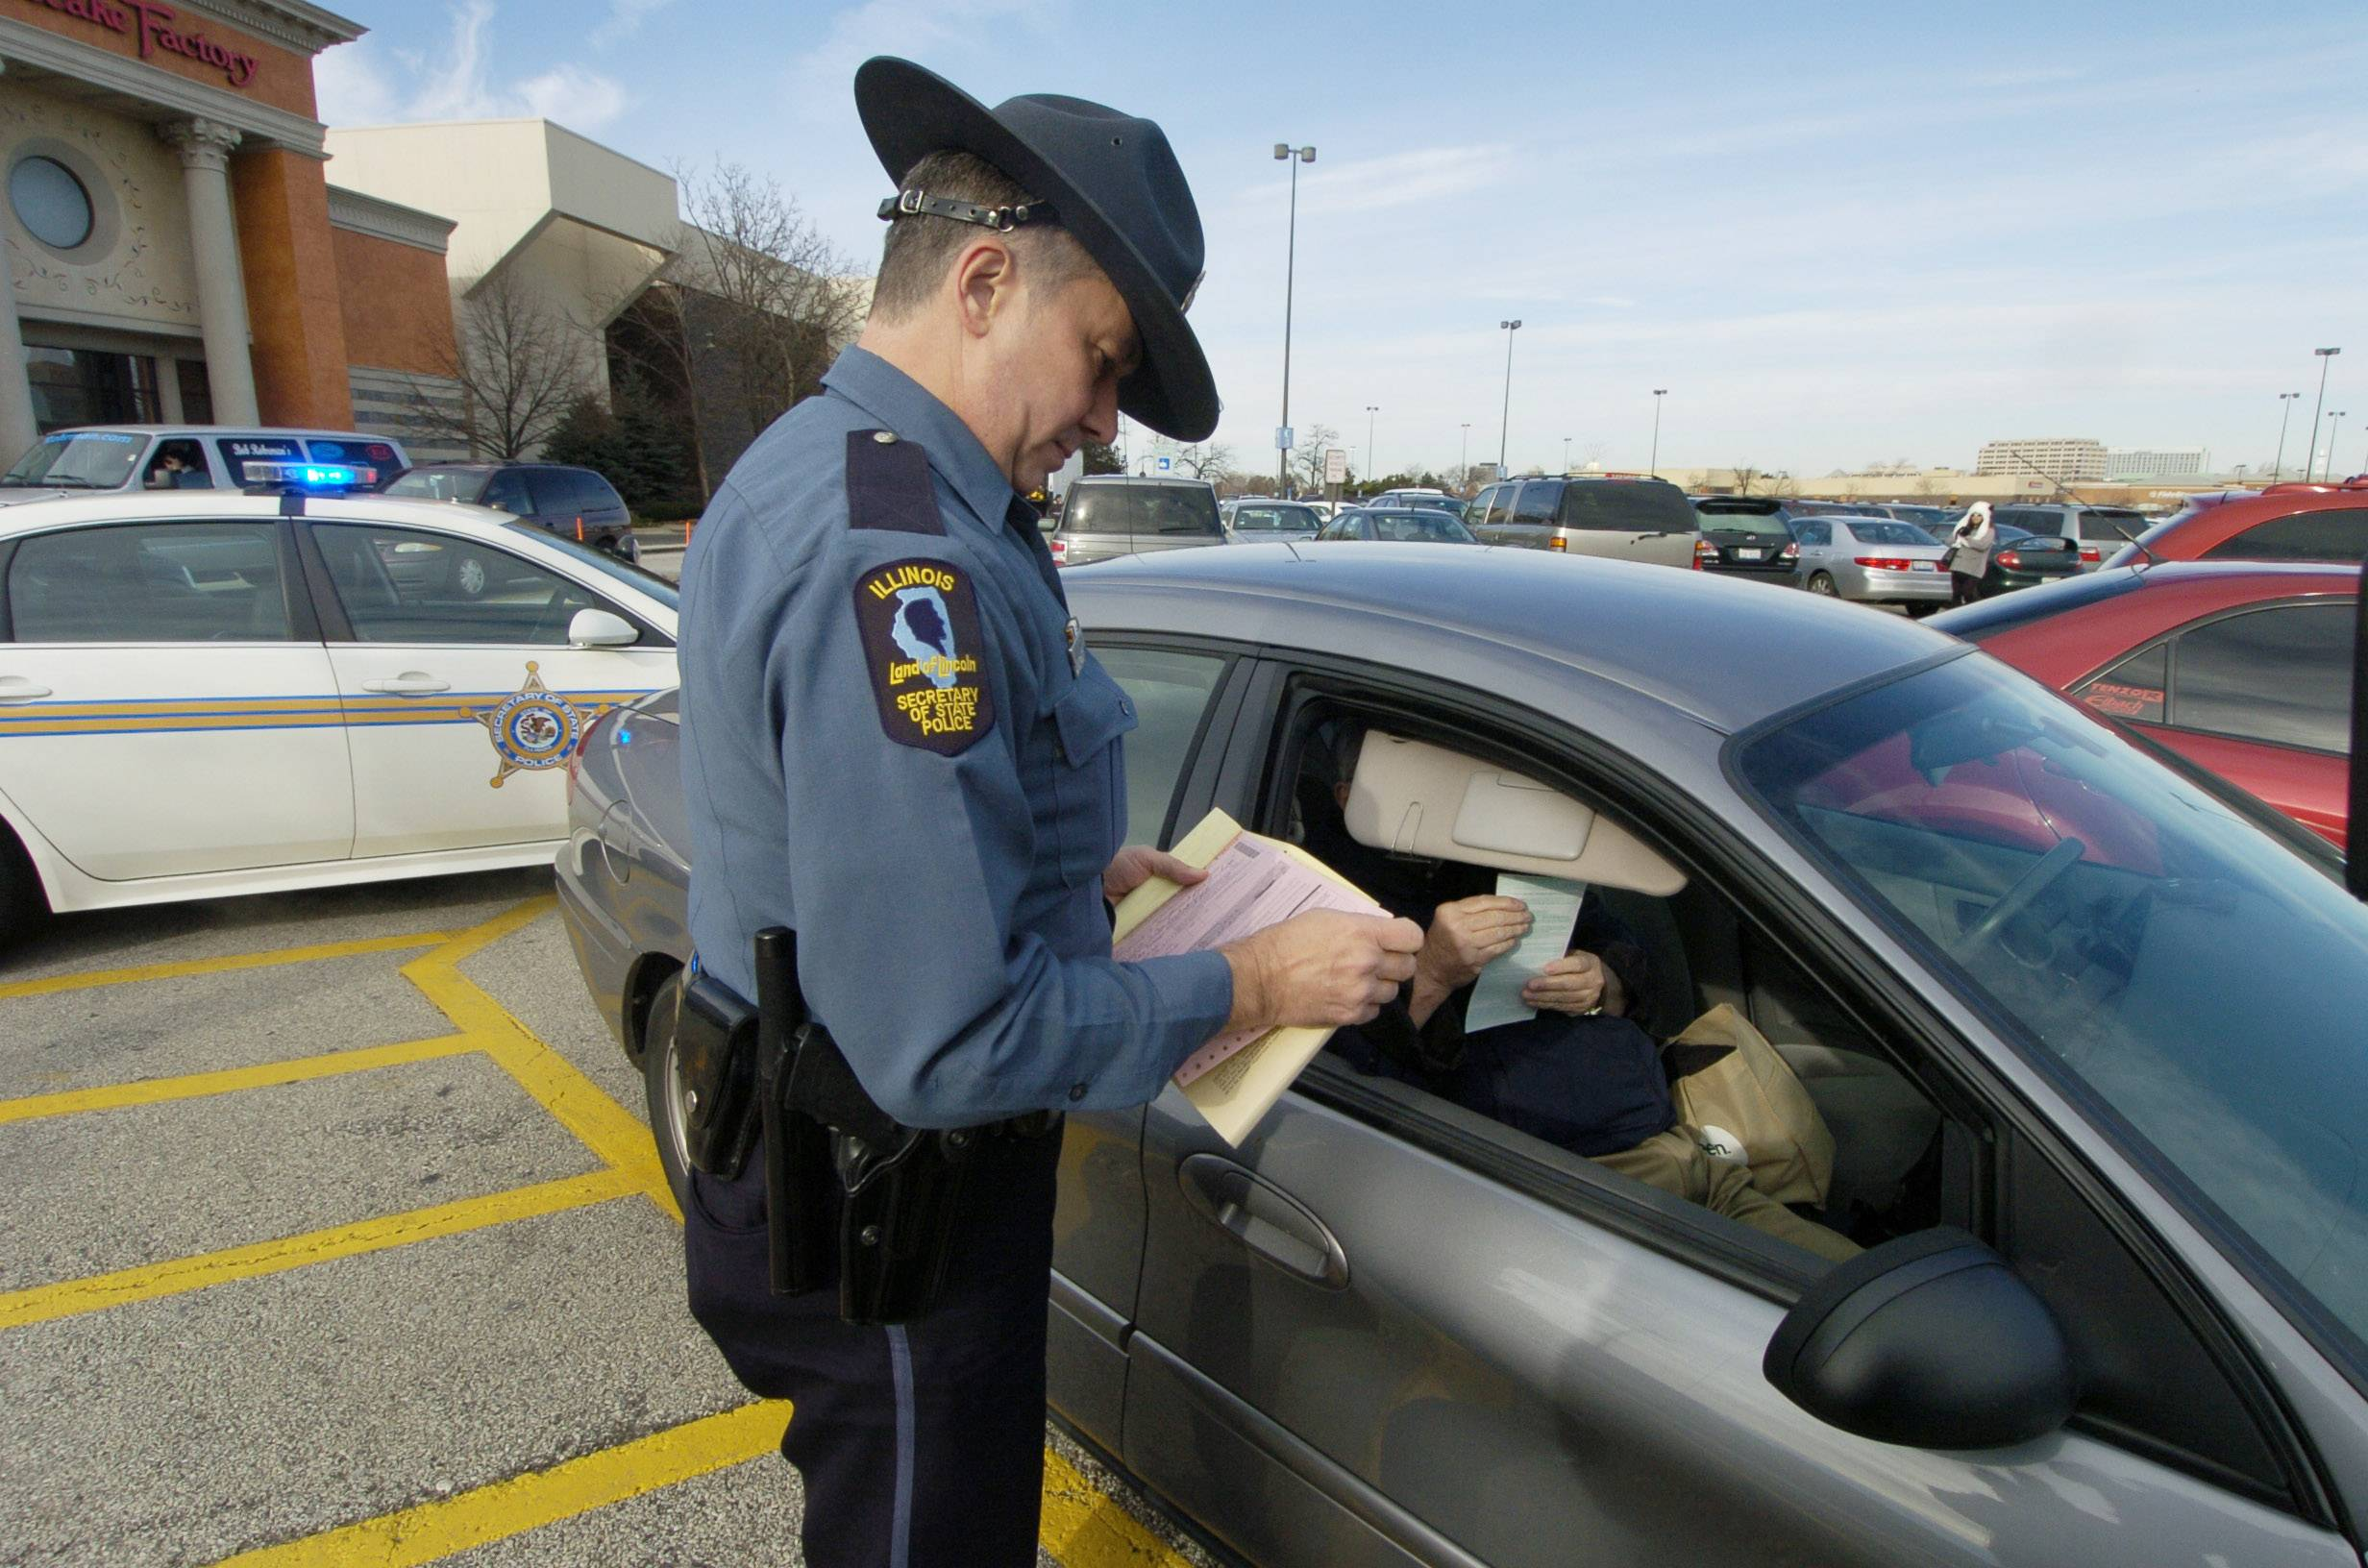 Investigator Glenn Florkow of the Illinois secretary of state police issues a citation to a driver unlawfully parked in a handicapped space at Woodfield Mall on Black Friday in 2010. Police will patrol the mall, and others across the state, on Friday looking for parking scofflaws.